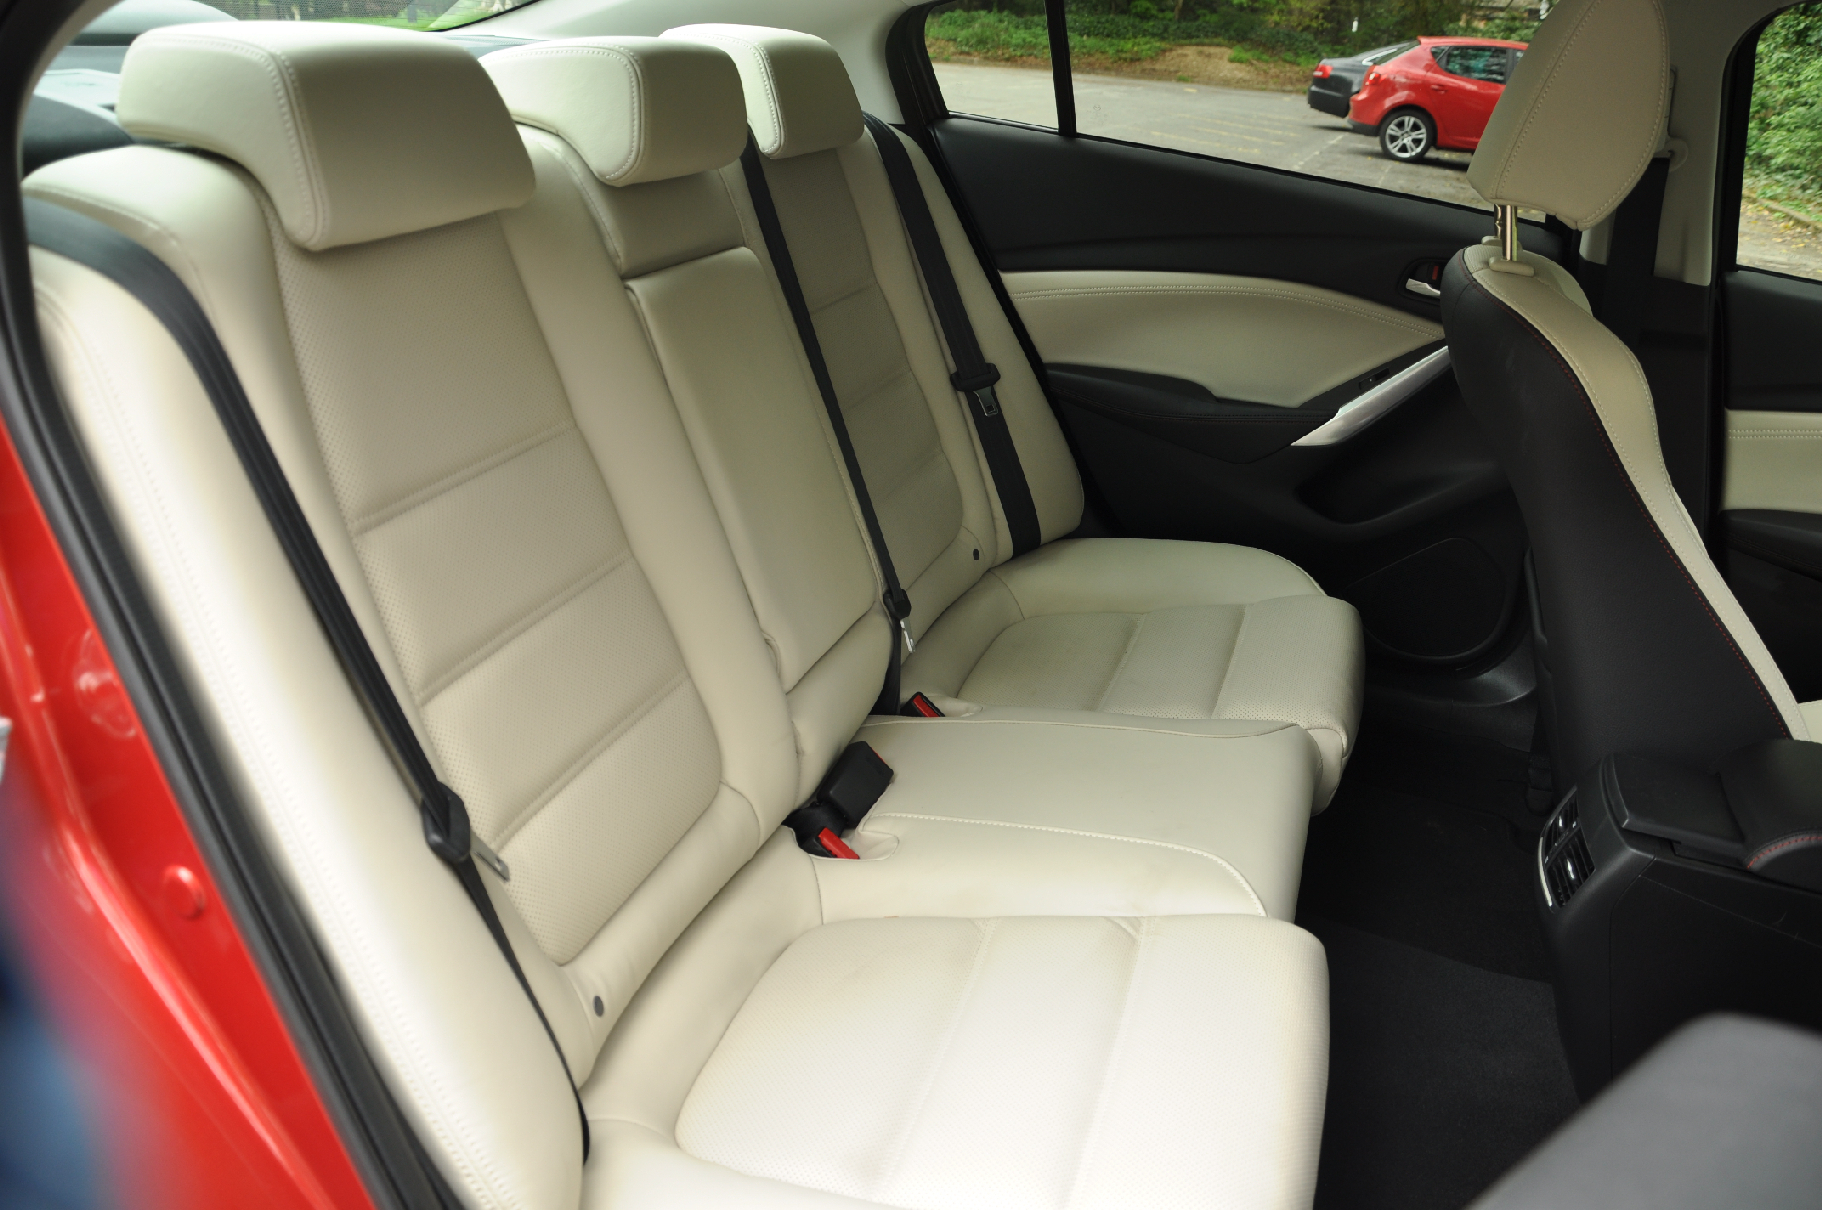 2013 Mazda6 2-2 diesel Sport Nav 175PS manual saloon road test review by Oliver Hammond Simons Car Spots - photo rear seats